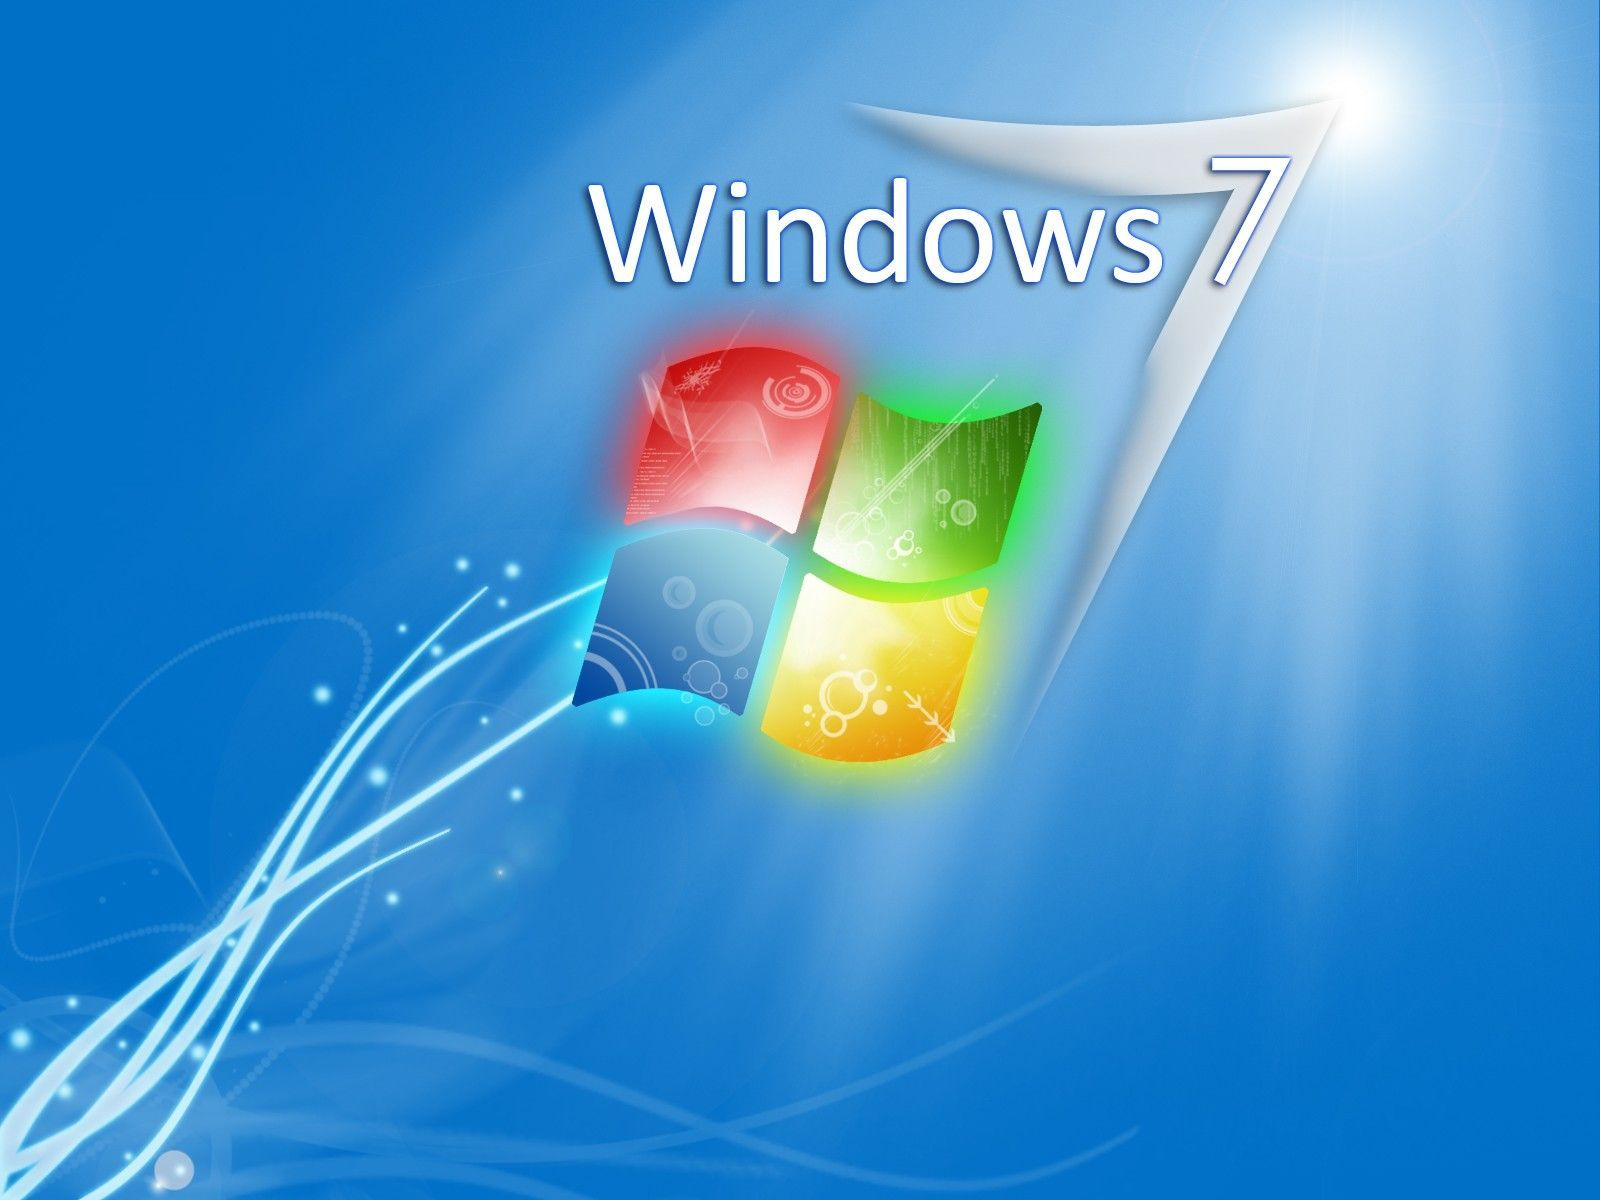 30 Image For Android Windows 7